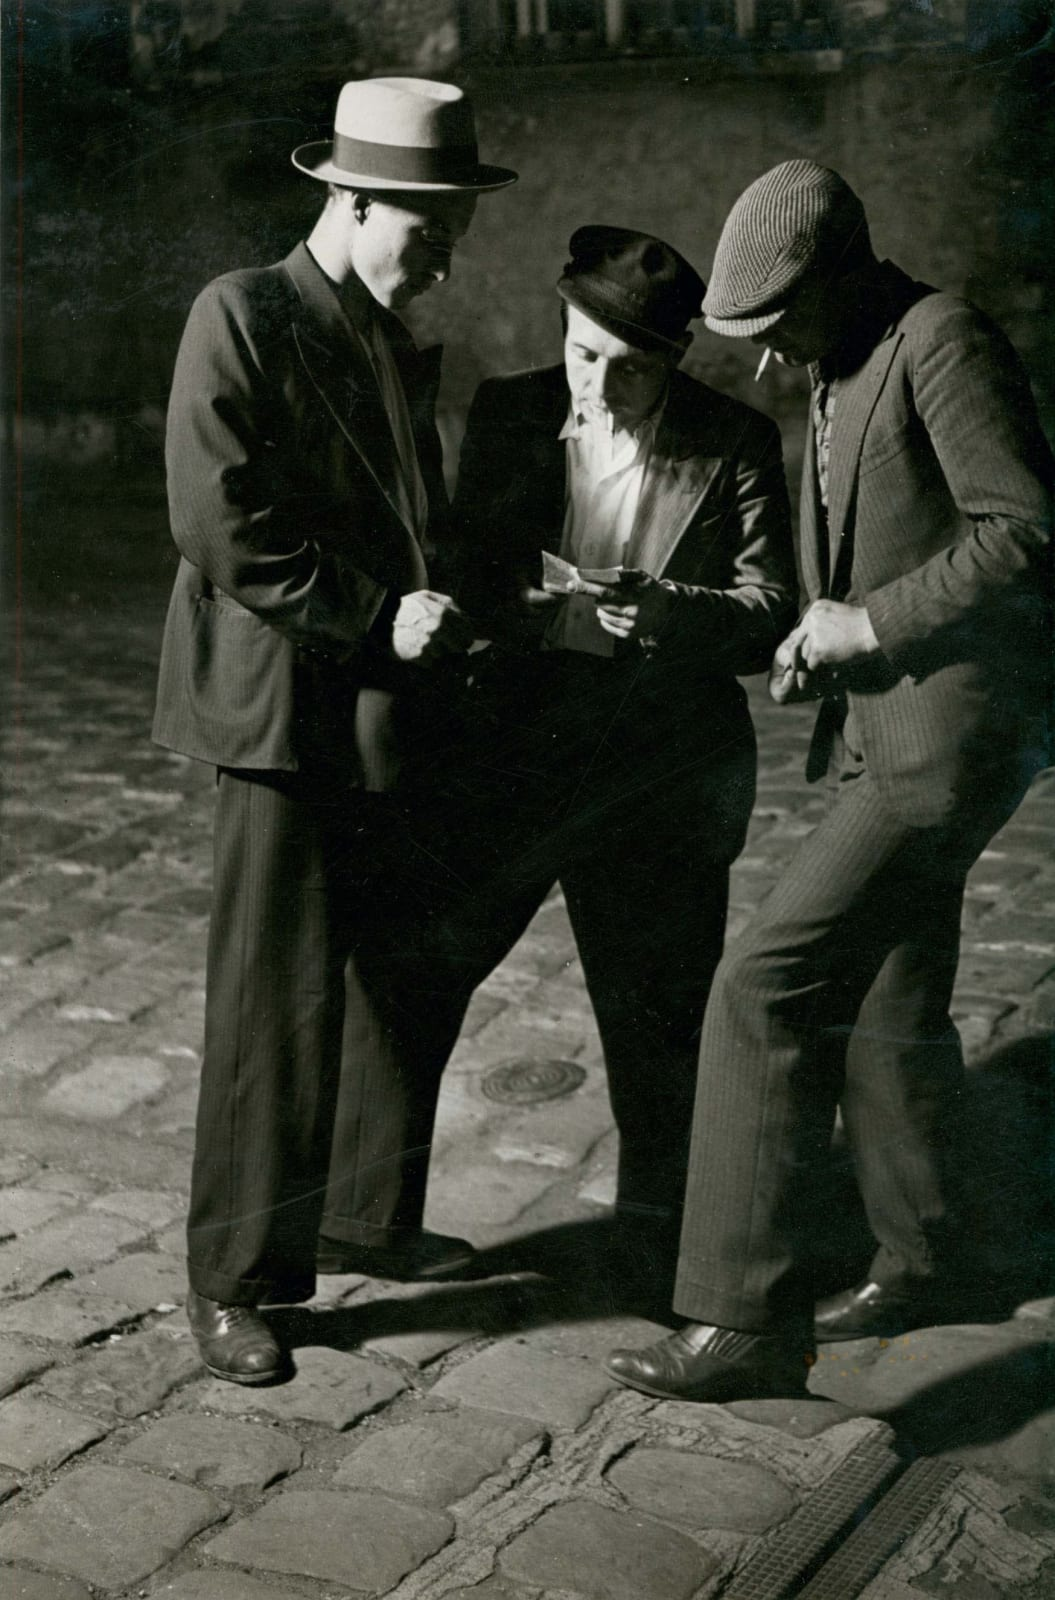 Brassai photograph of three young men in Paris street at night